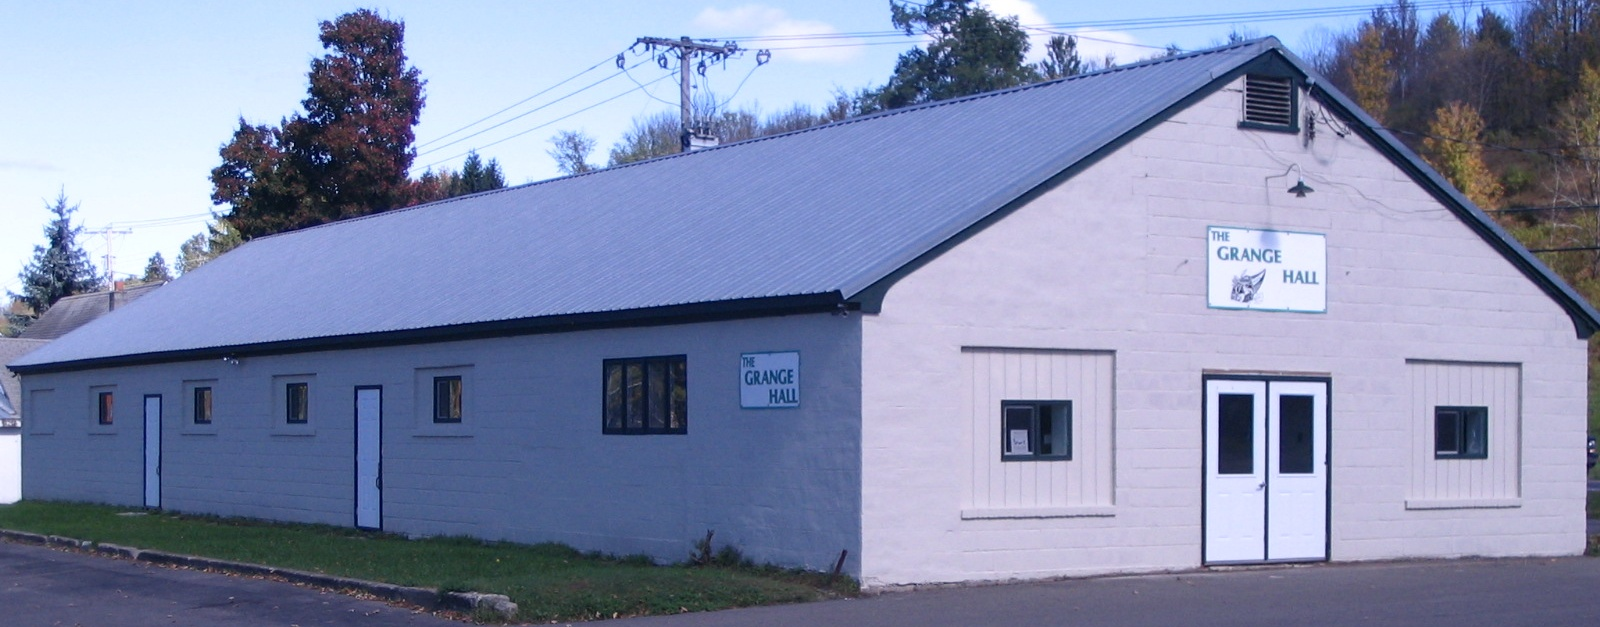 Chenango County Grange Hall